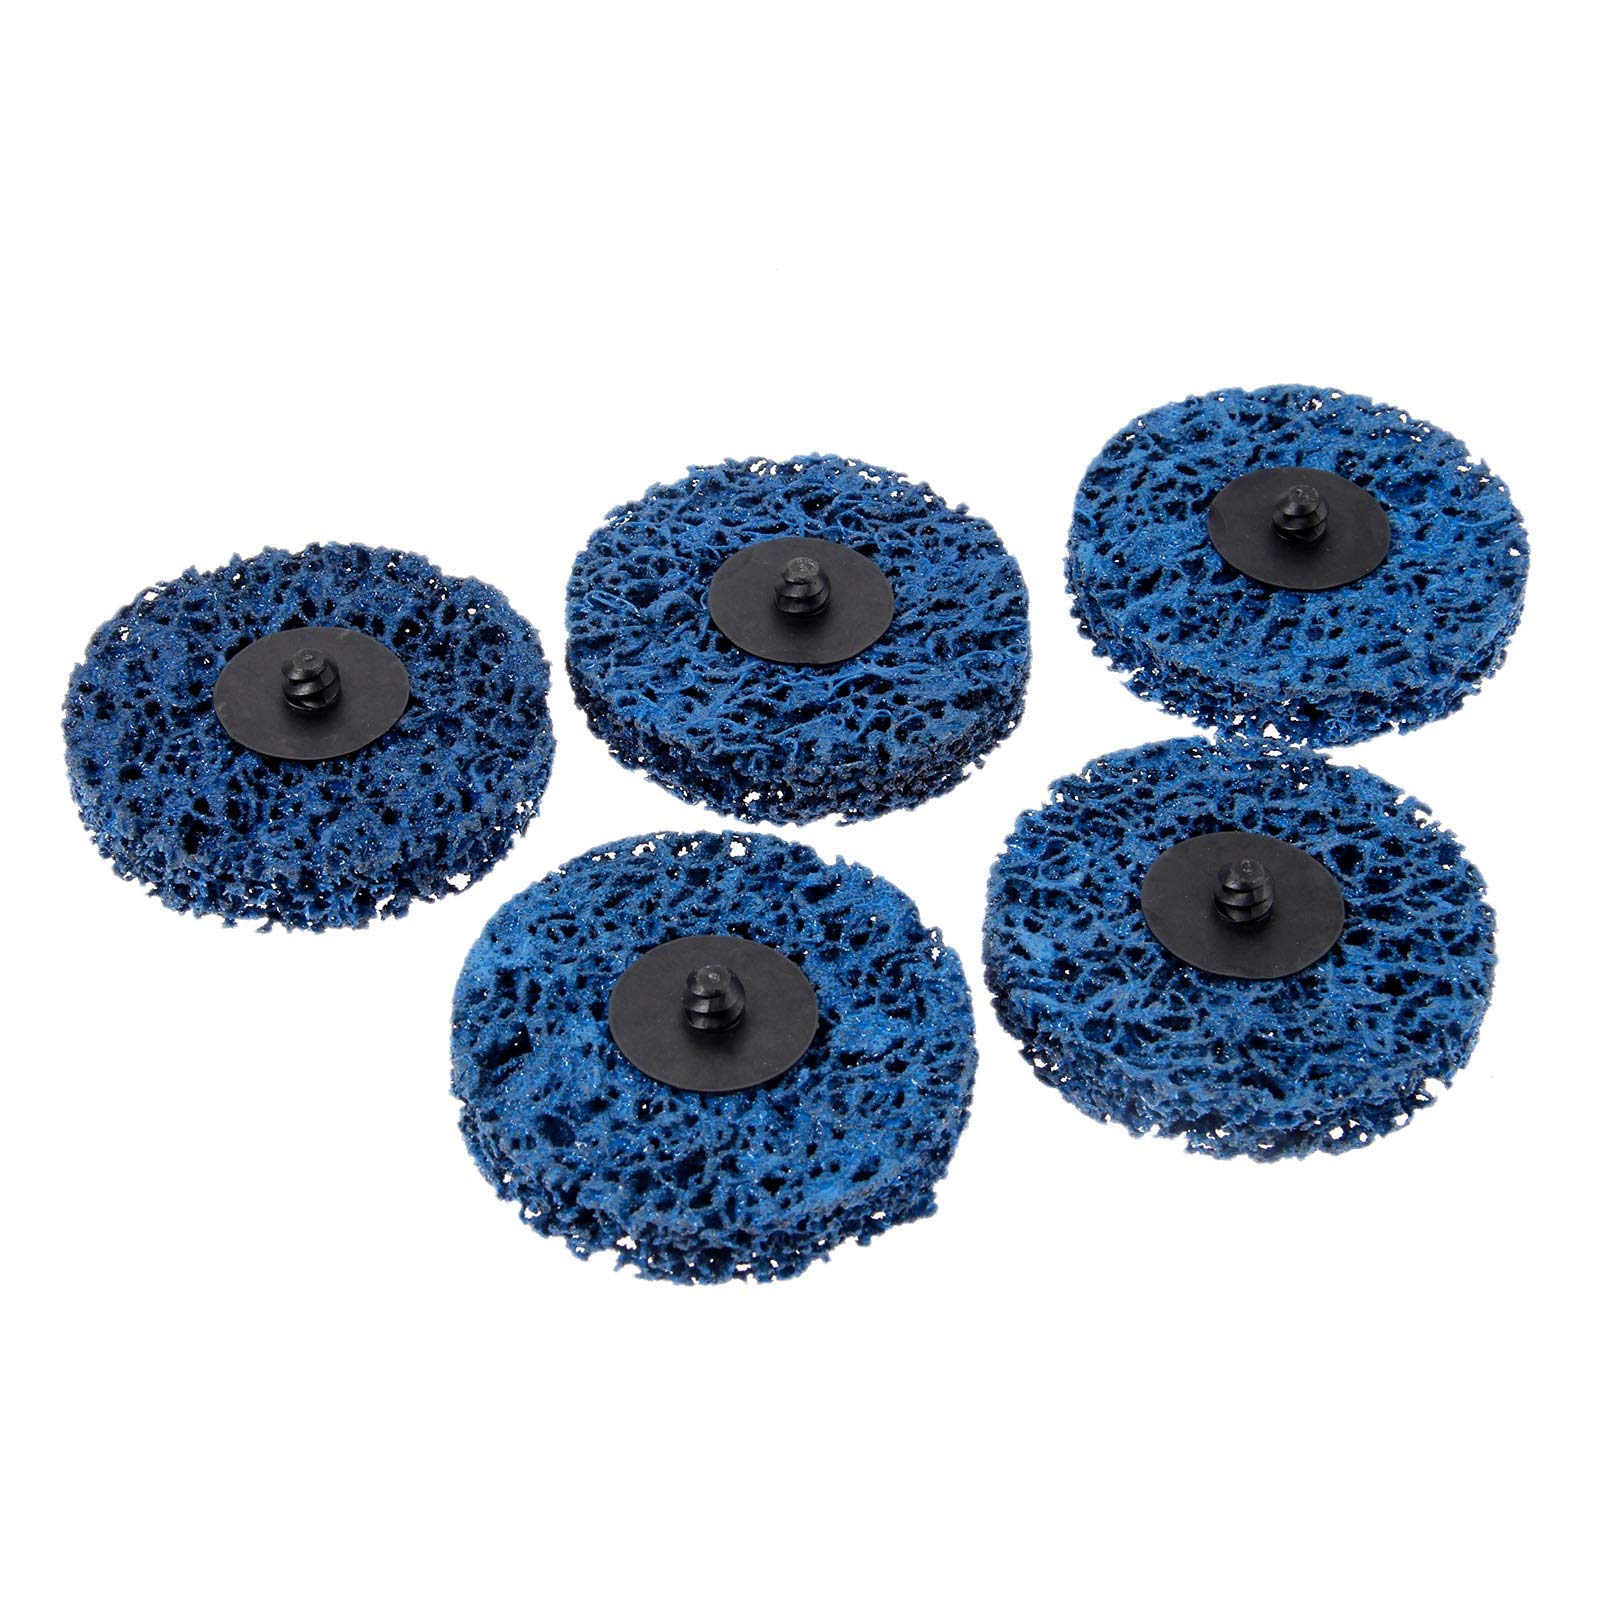 Grind Stone - 5pcs 75mm/3inch Strip Wheels Paint Rust Removal Clean Right Angle Grinder Discs For Metals Fiber Glass Stone Wood